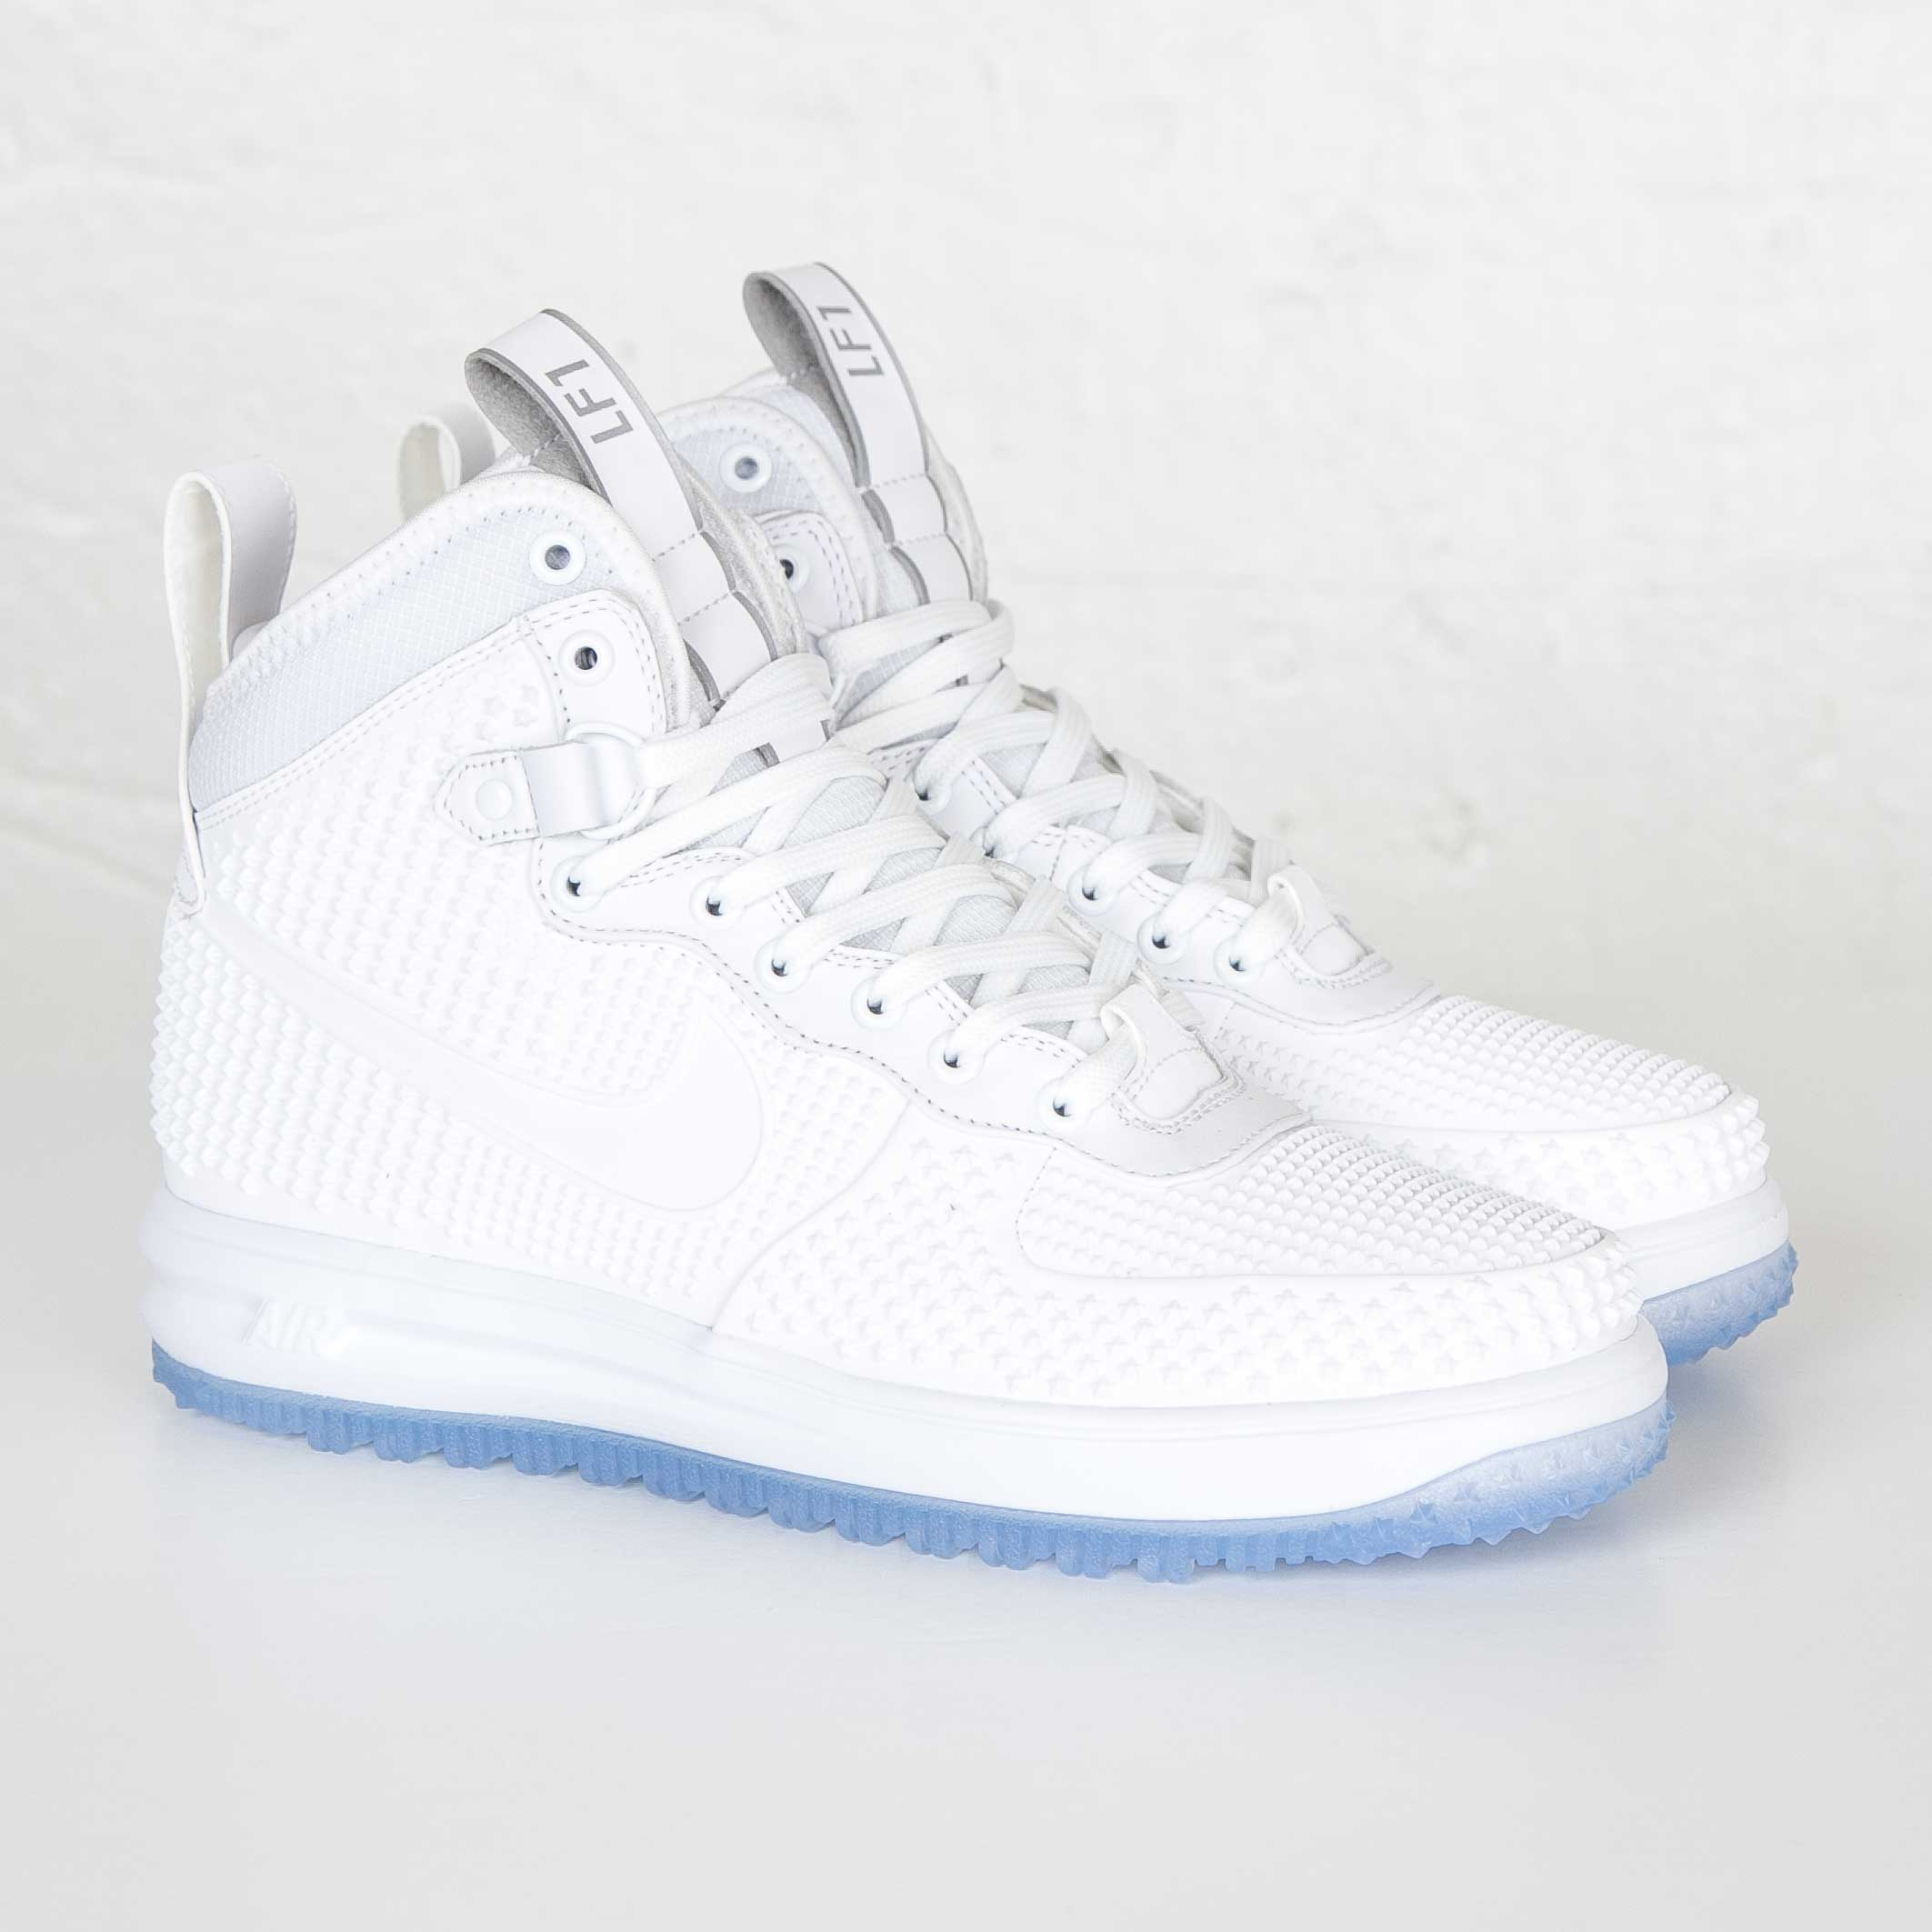 big sale 8dfa3 fb3bf Nike Lunar Force 1 Duckboot Premium